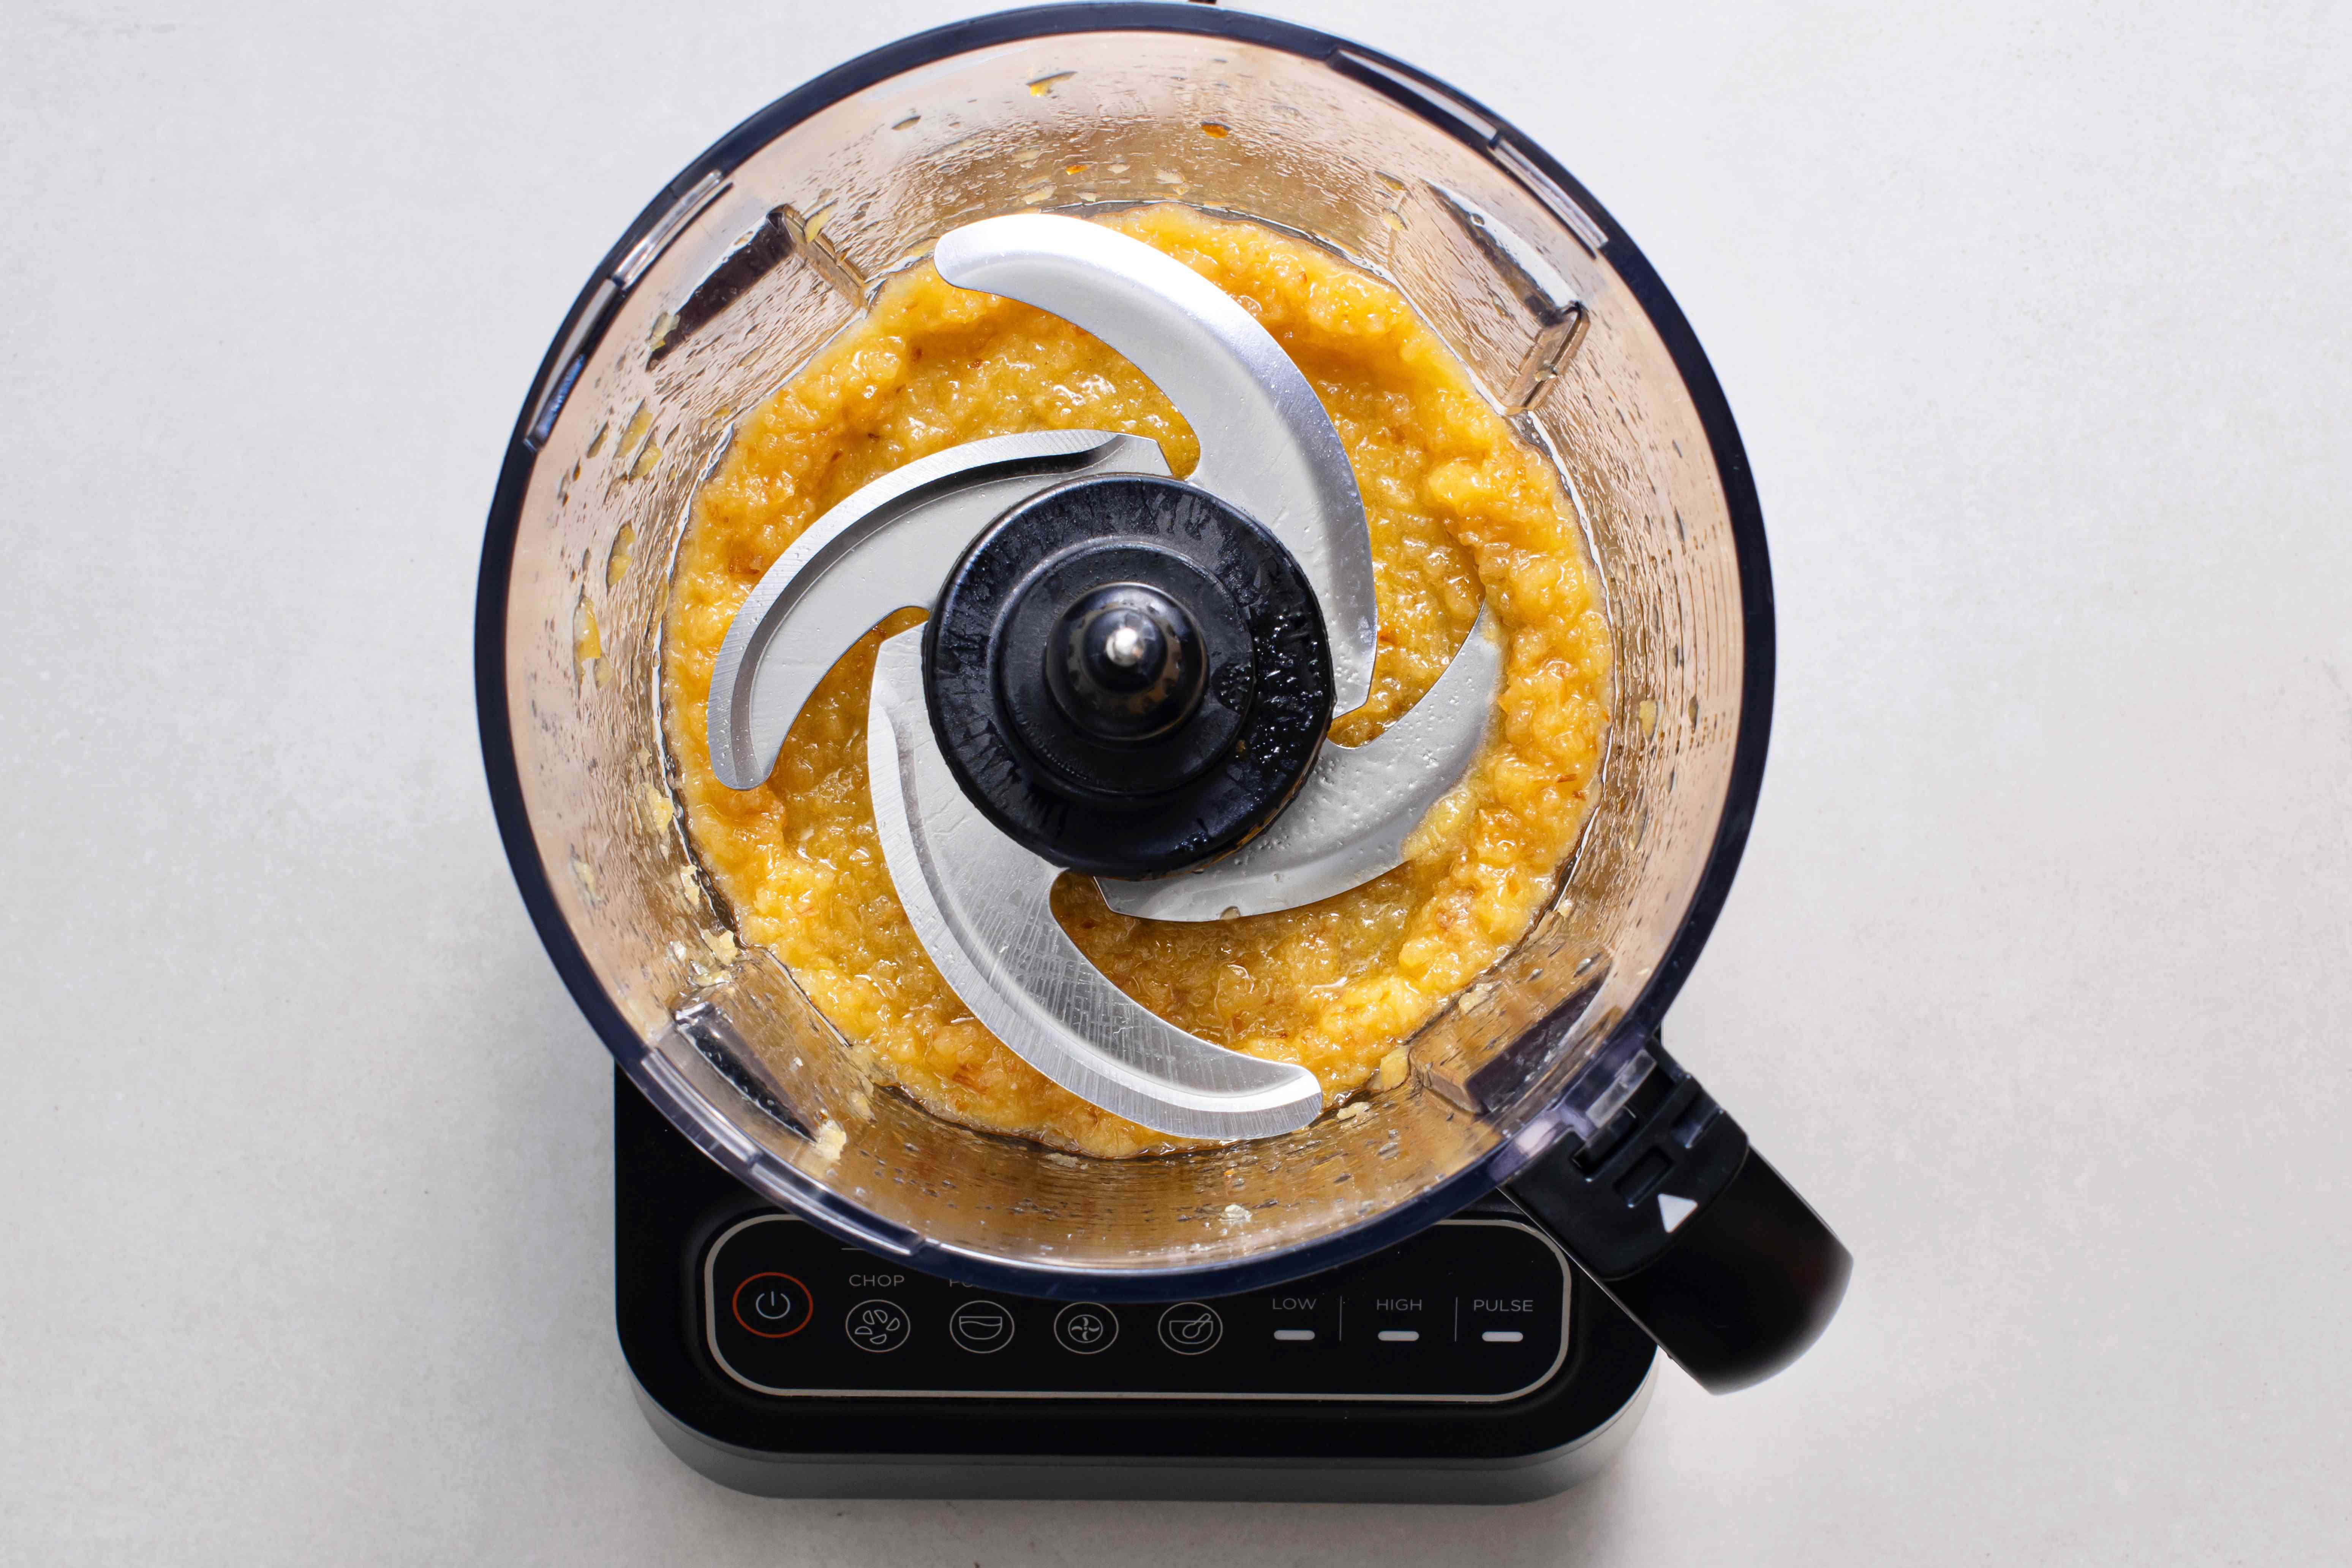 onions and garlic in a food processor